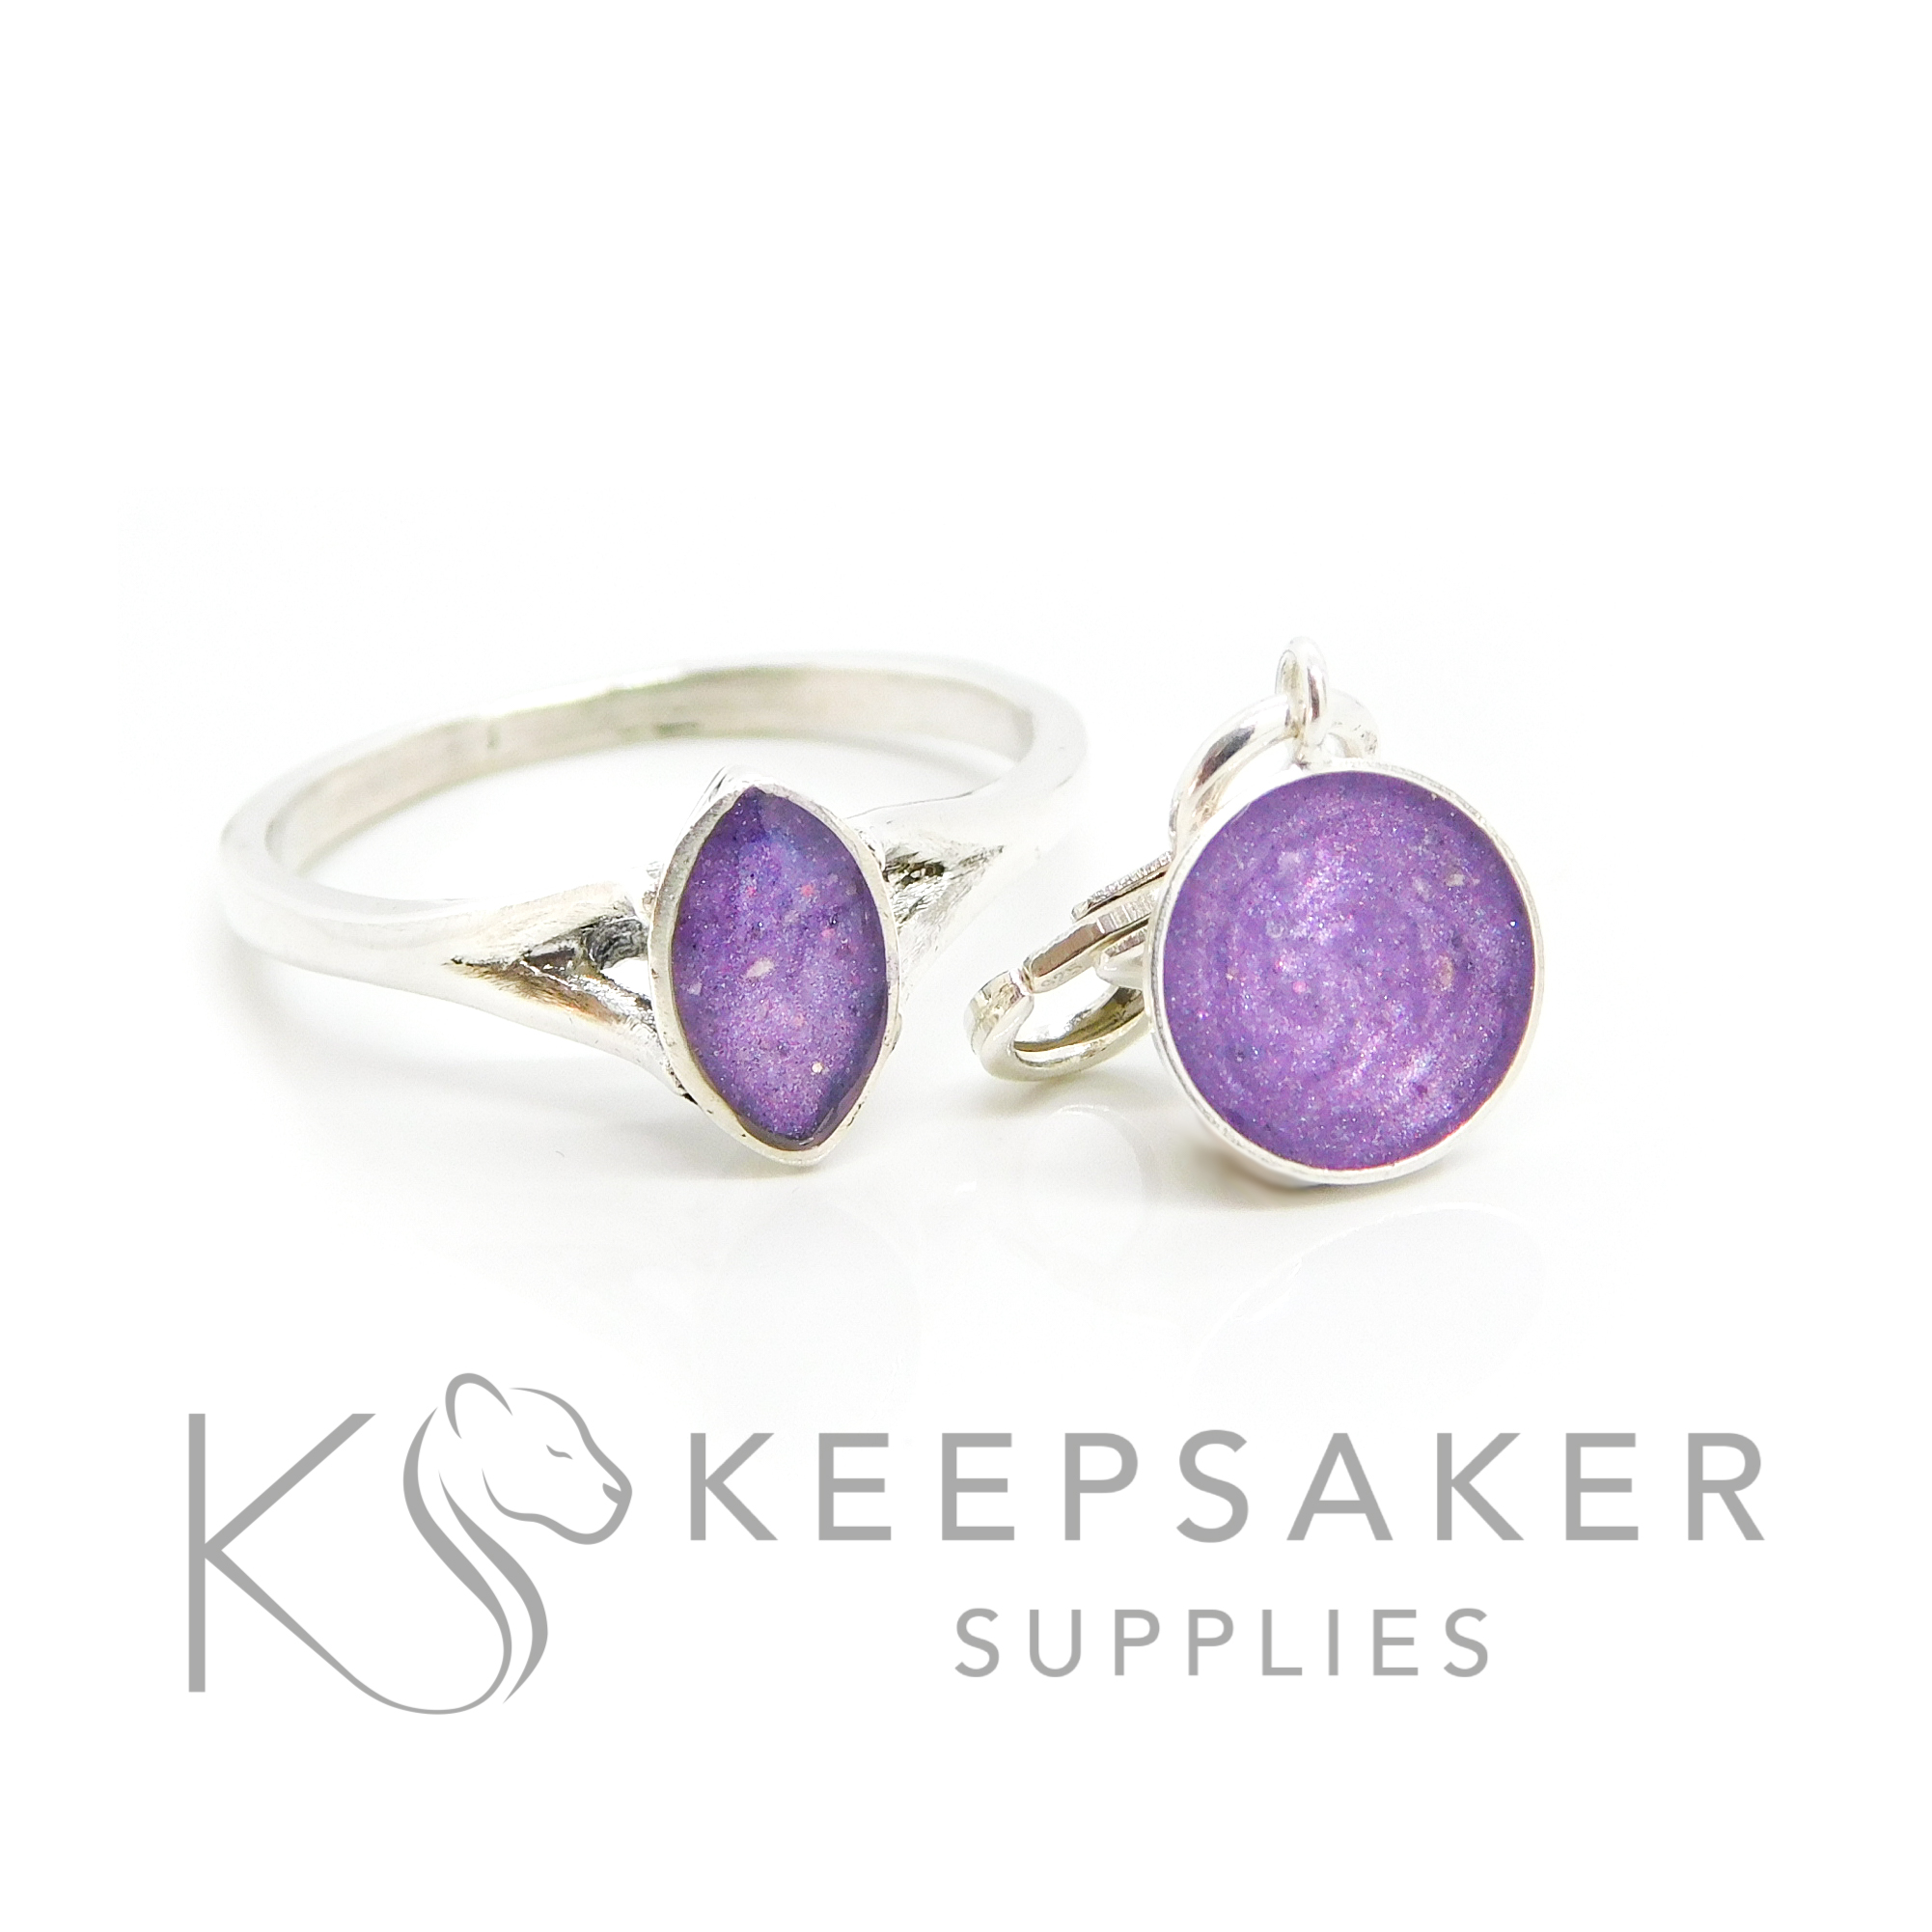 Filled Marquise Ashes Ring with Bonus Dangle Charm Cremation ashes Hannah marquise ring and little 8mm bezel cup, orchid purple resin sparkles. Solid silver hand finished marquise setting with split shank, plus tiny little dangle charm with lobster clasp.